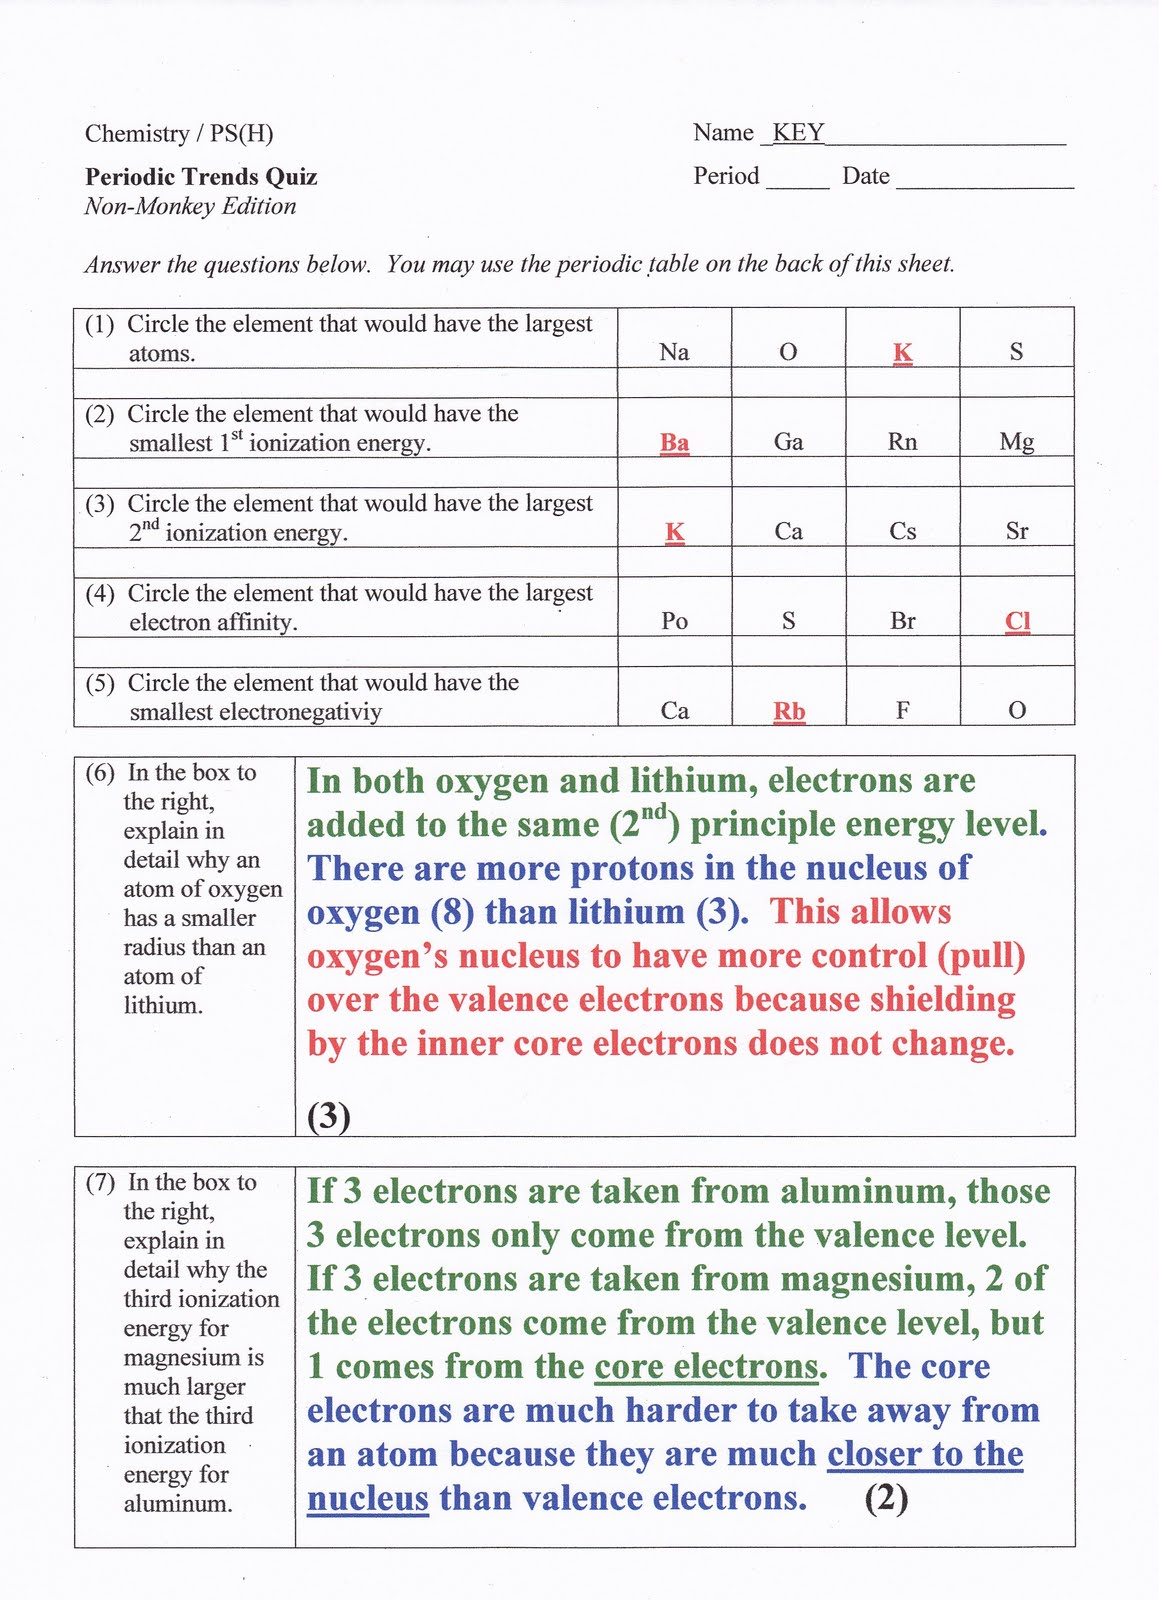 Heritage high school honors physical science periodic trends quiz 1 class you will be asked questions similiar to those below but you will not have your notes available to you you will be given a periodic table to use urtaz Image collections